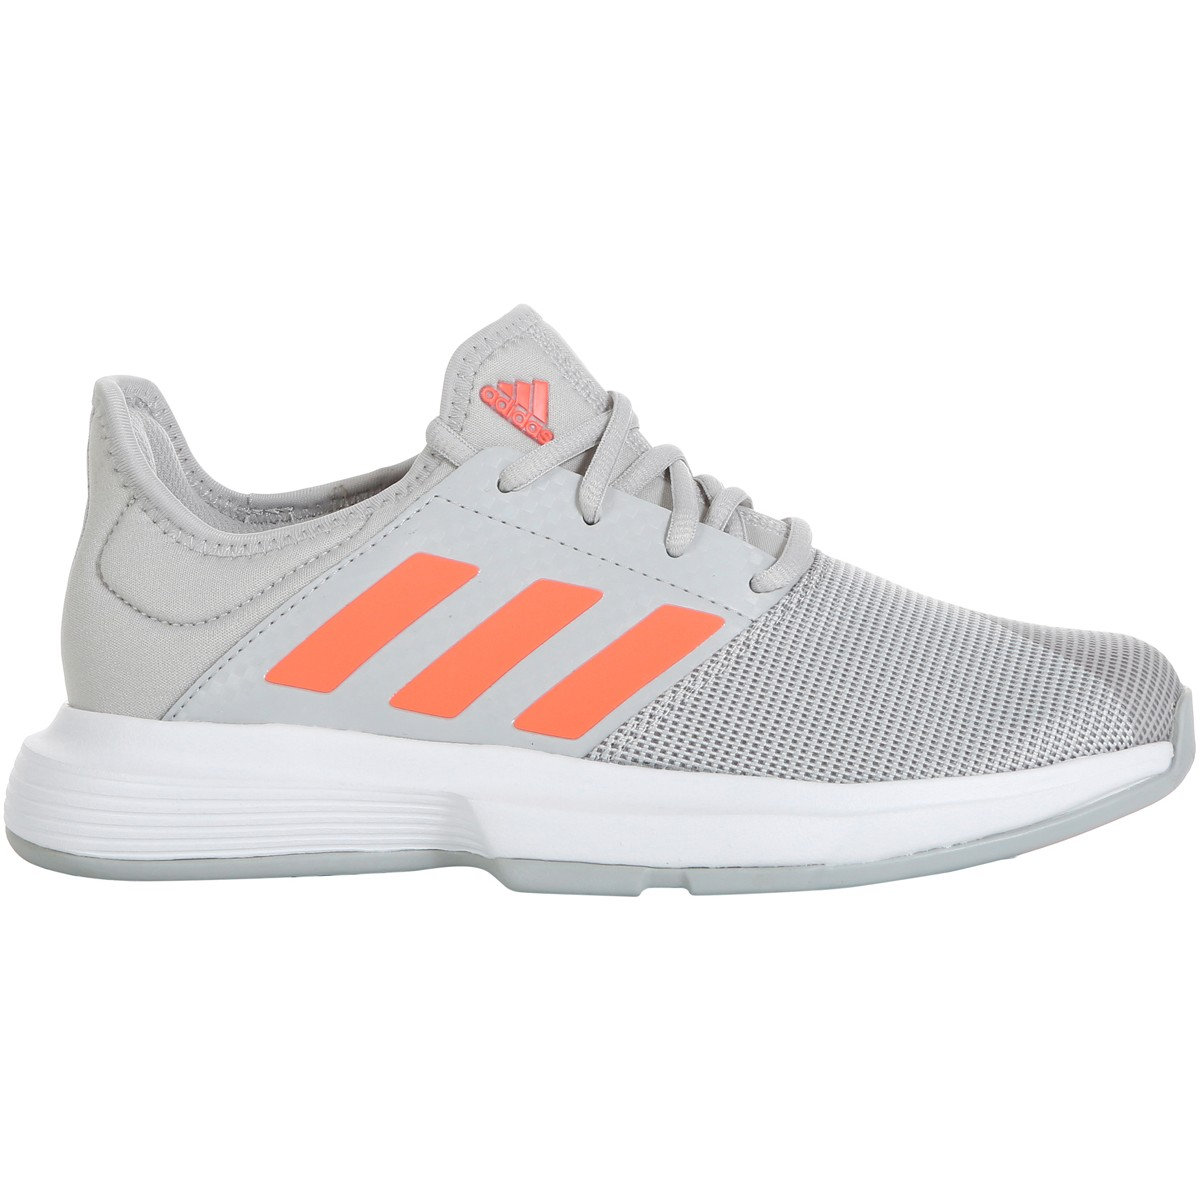 CHAUSSURES ADIDAS FEMME GAME COURT TOUTES SURFACES